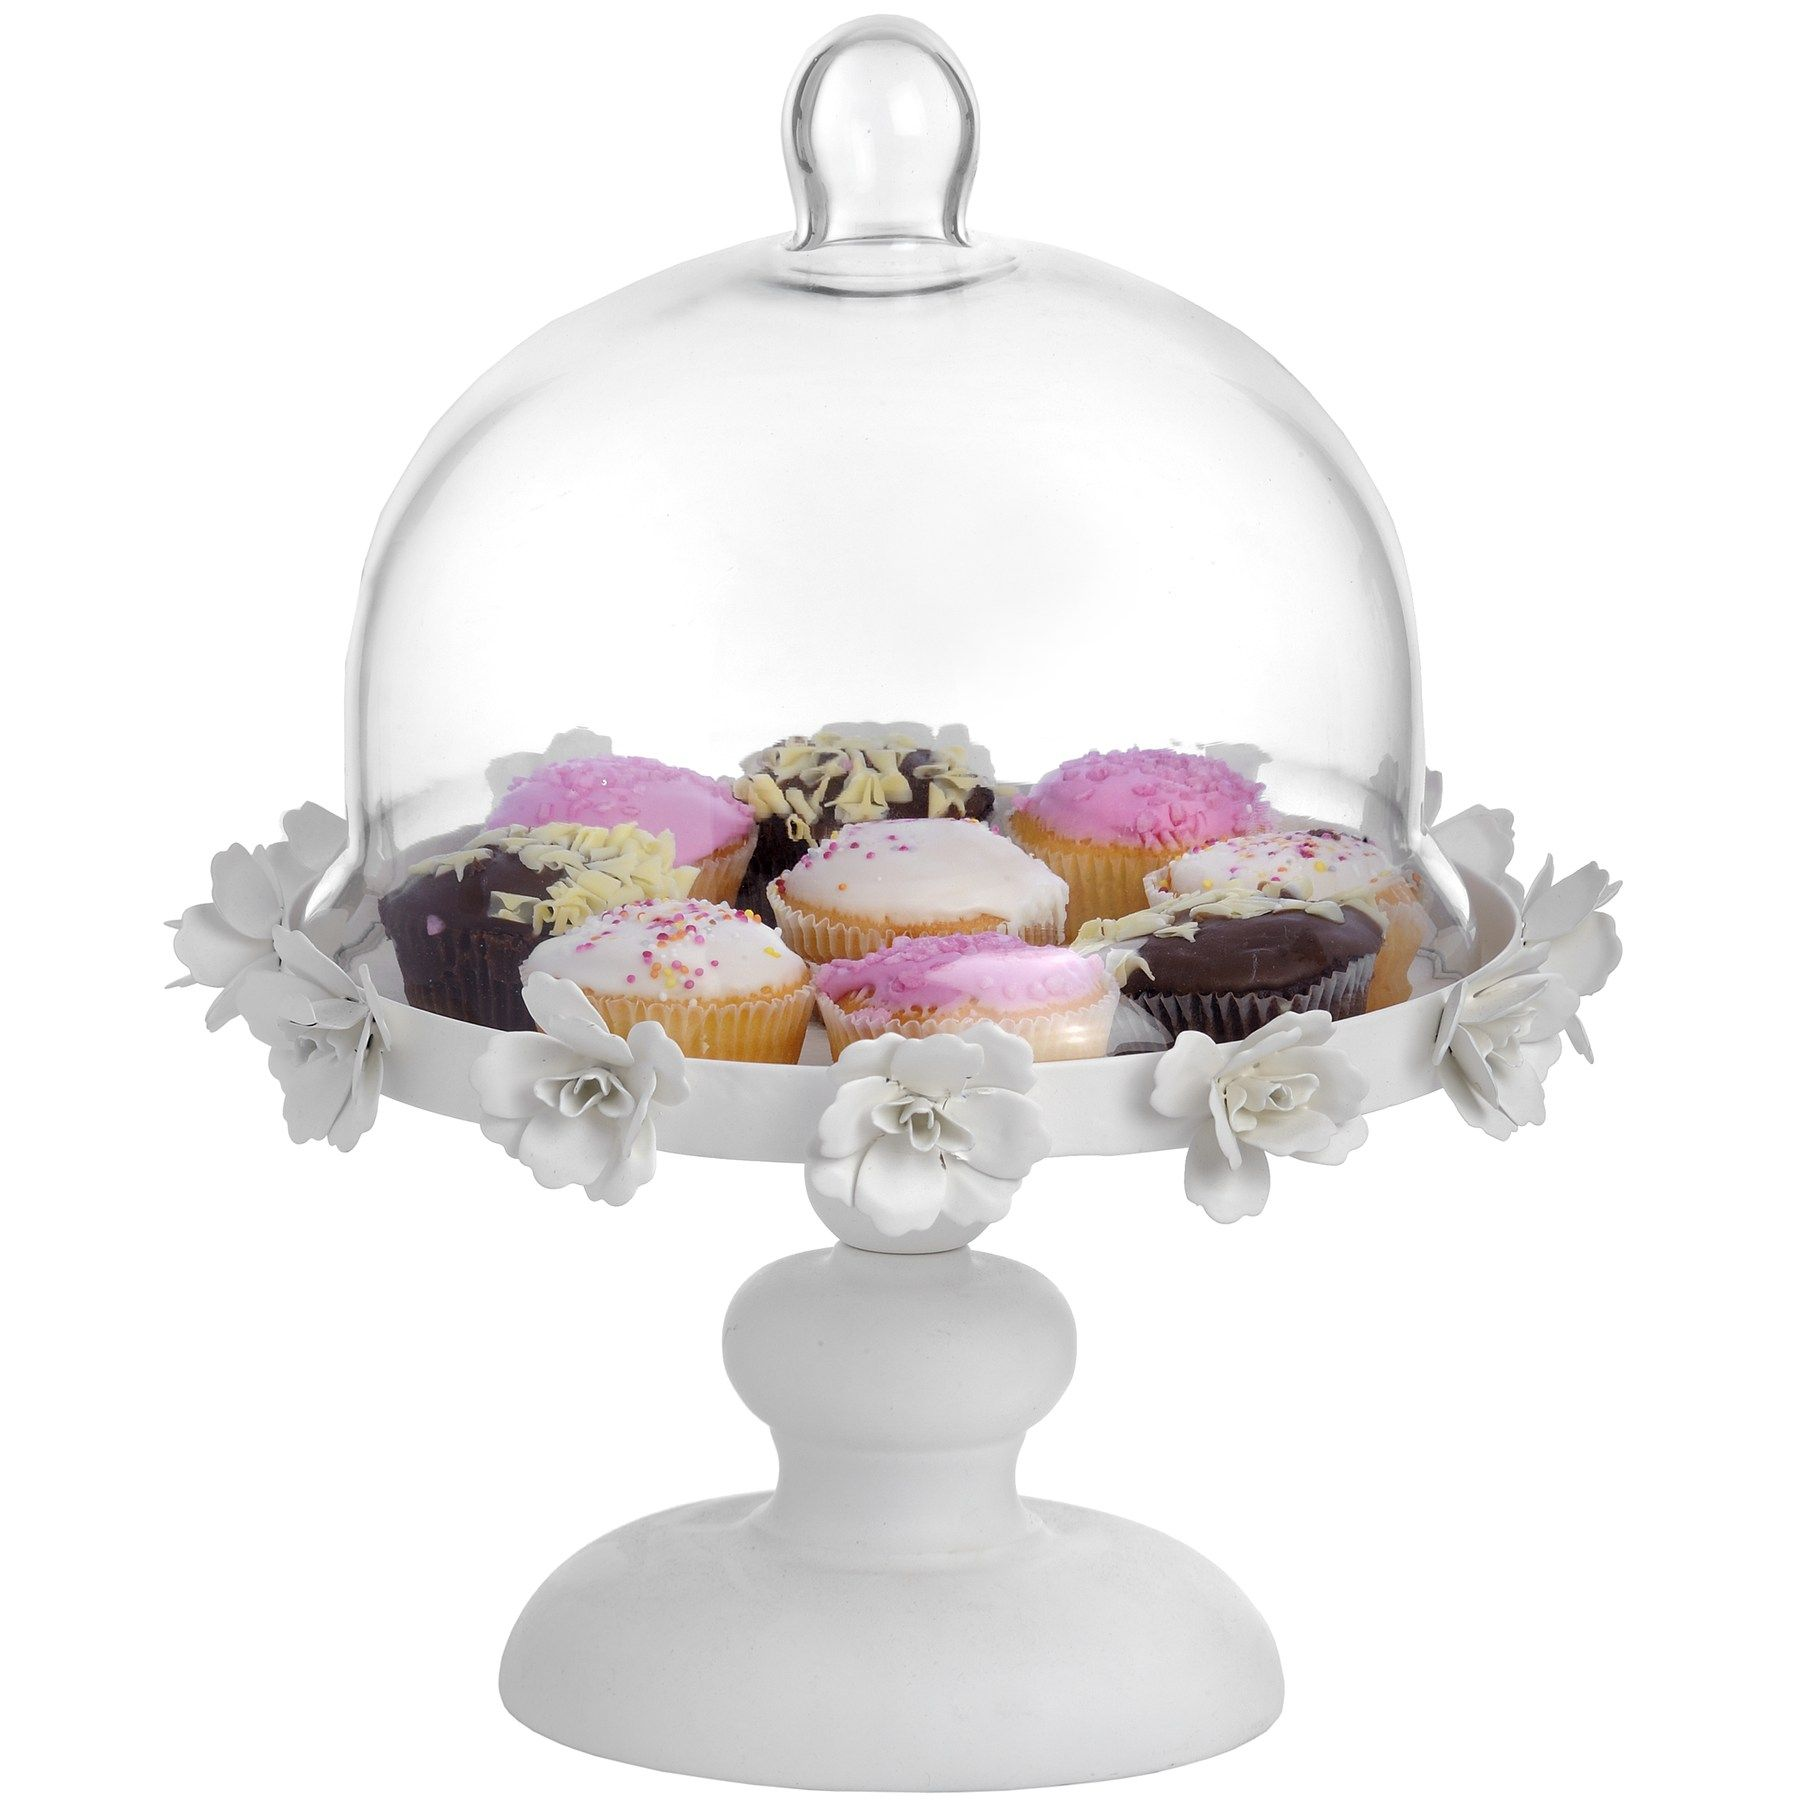 Antique cream cake stand with floral detail and glass cloche